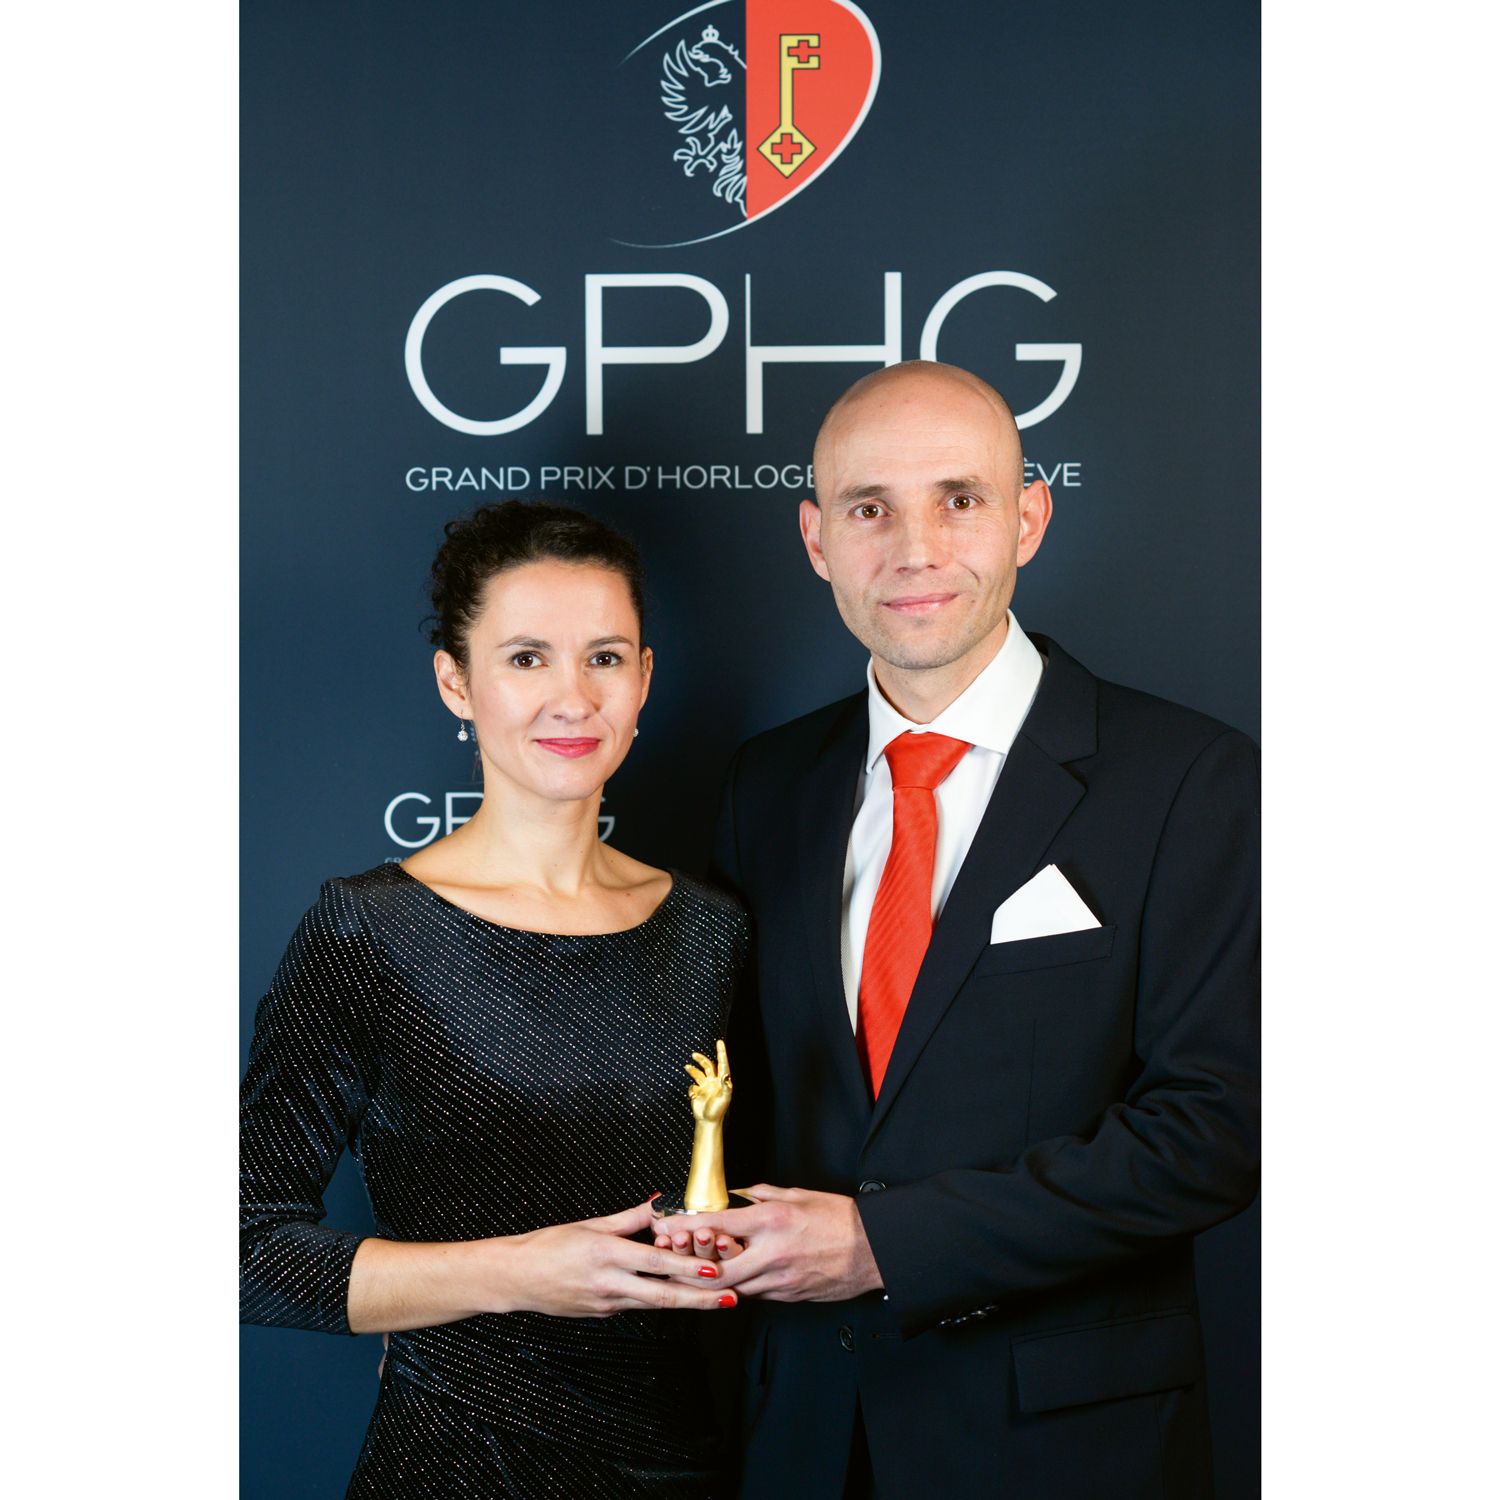 In 2019, Stefan Kudoke became the first independent watchmaker from Germany to be awarded the Grand Prix d'Horlogerie de Genève, in the Petite Aiguille category for the Kudoke 2 watch.